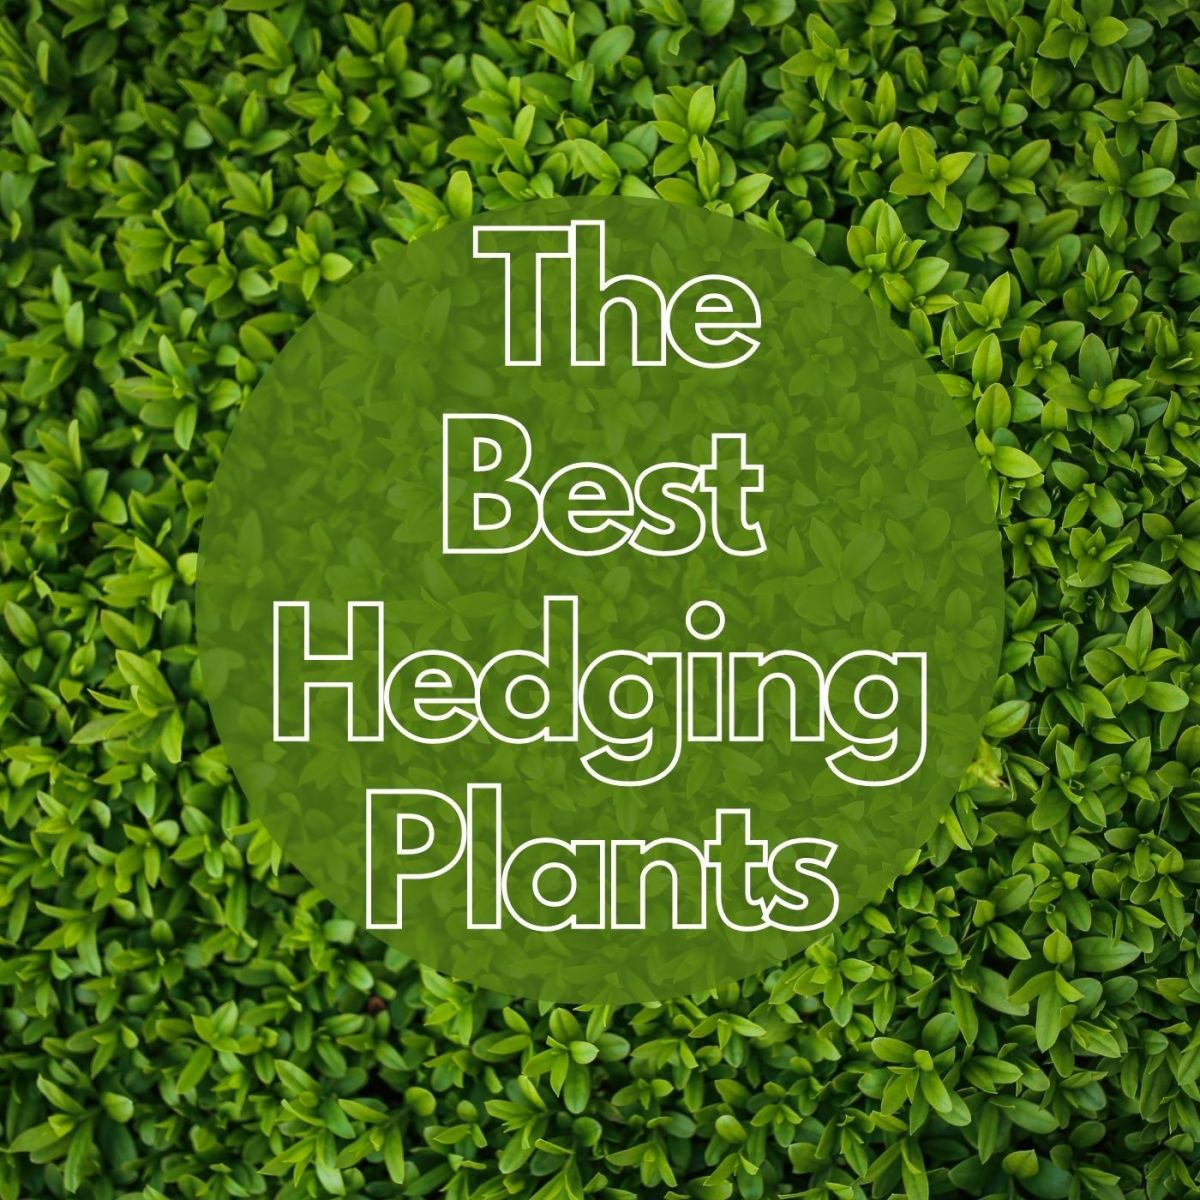 These hedge plants are amazing and provide great privacy.